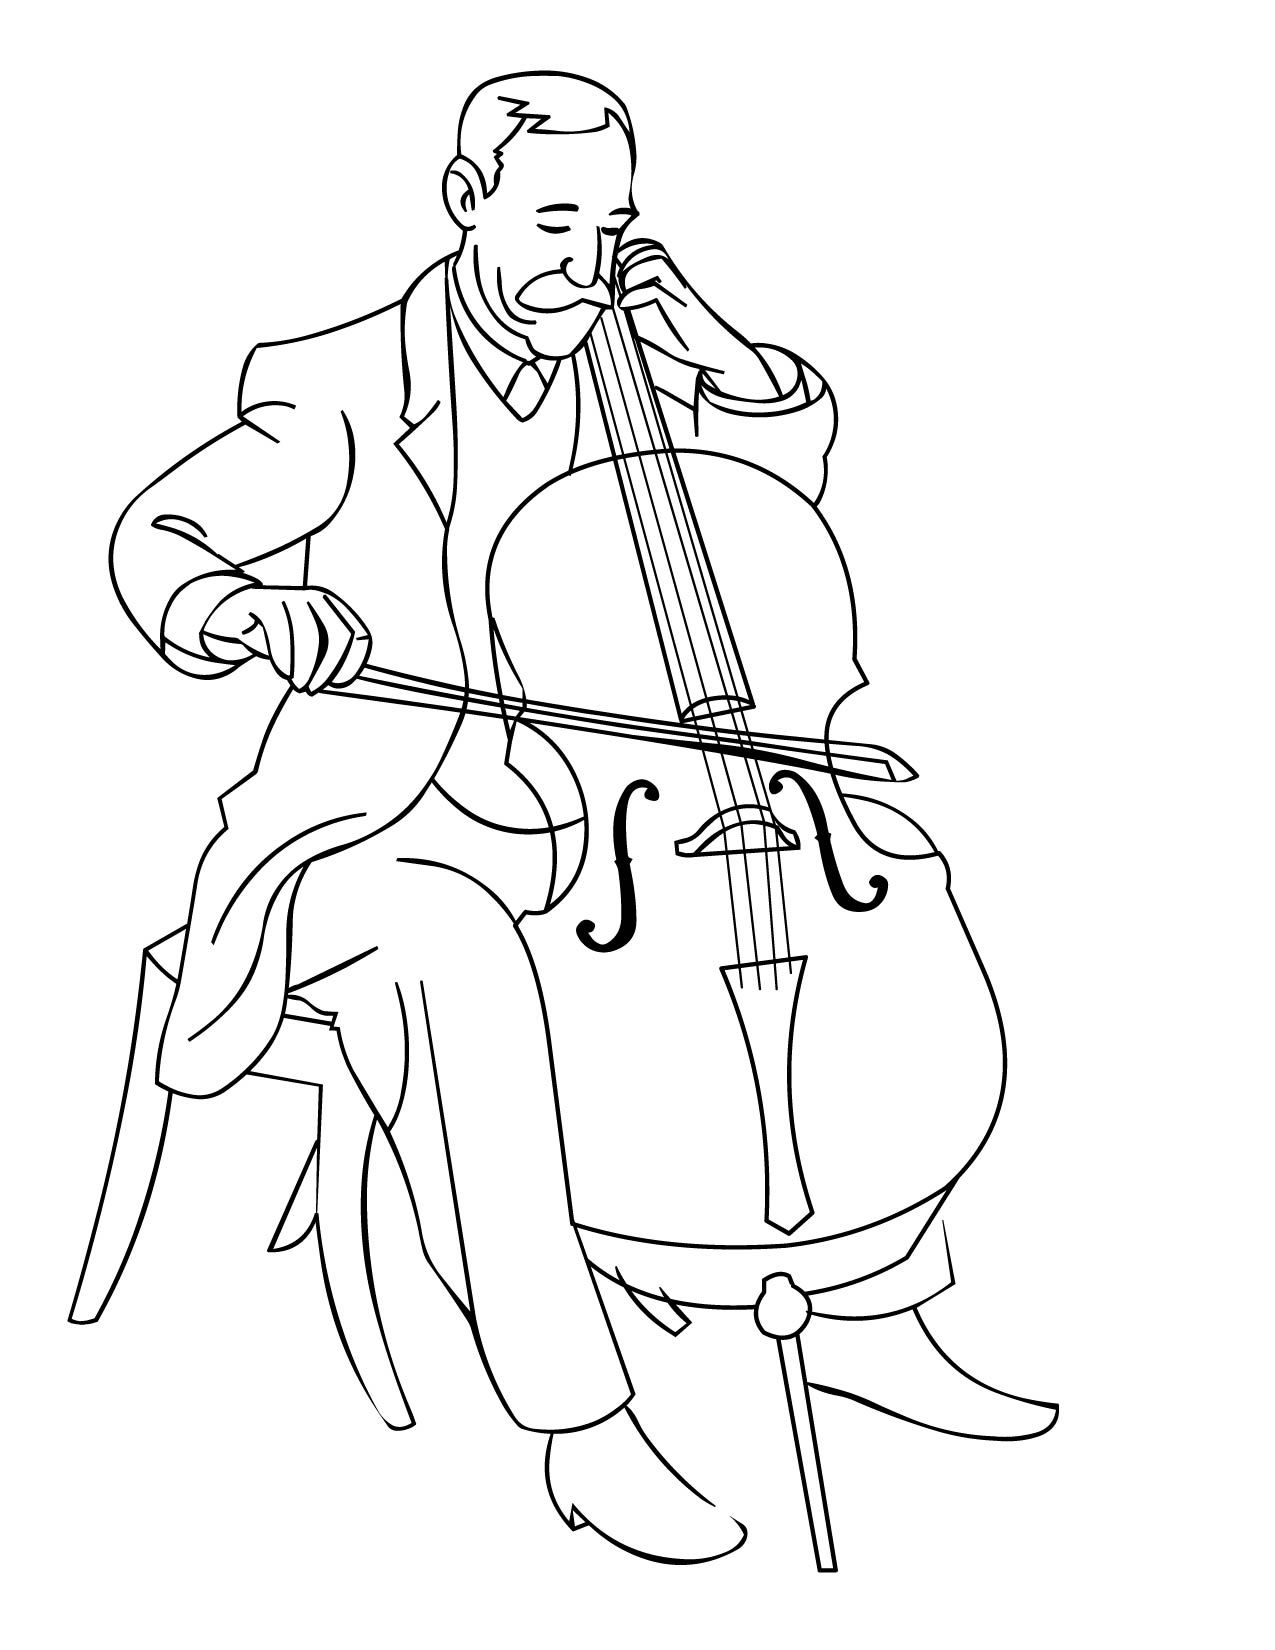 coloring musical instruments drawing kids n funcom 62 coloring pages of musical instruments instruments drawing coloring musical